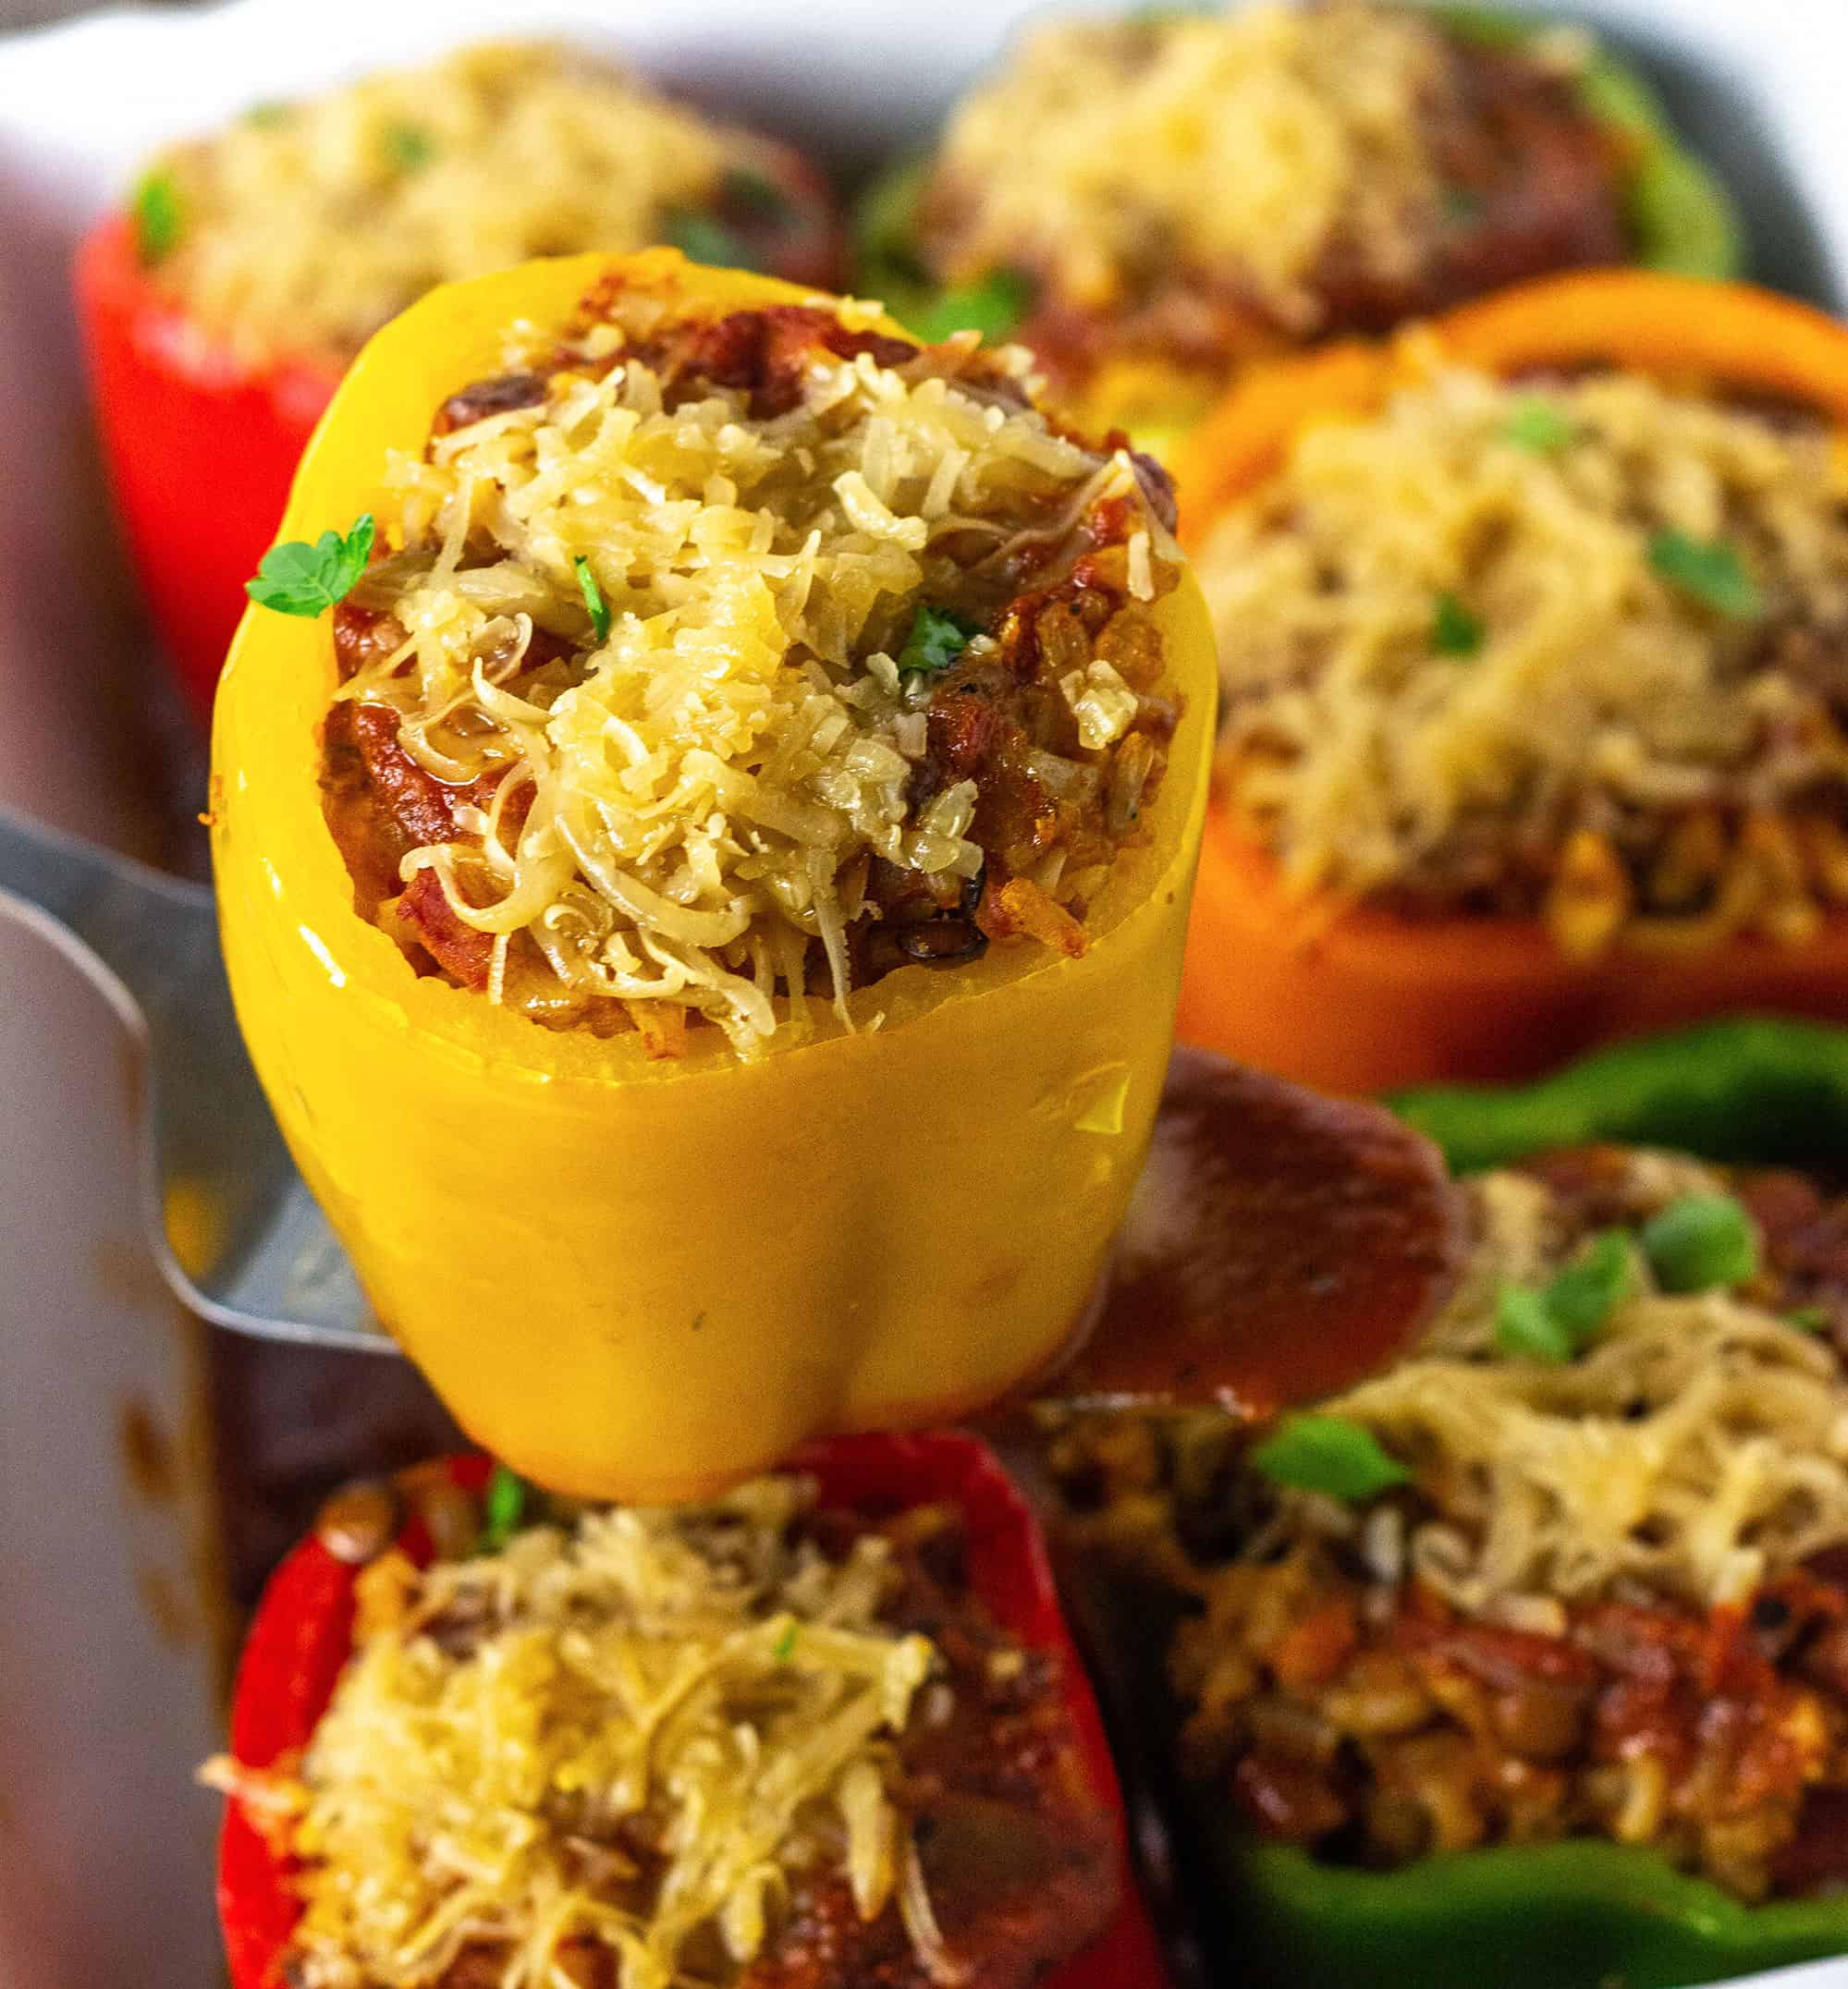 Easy Vegan Stuffed bell peppers close view showing yellow stuffed bell pepper